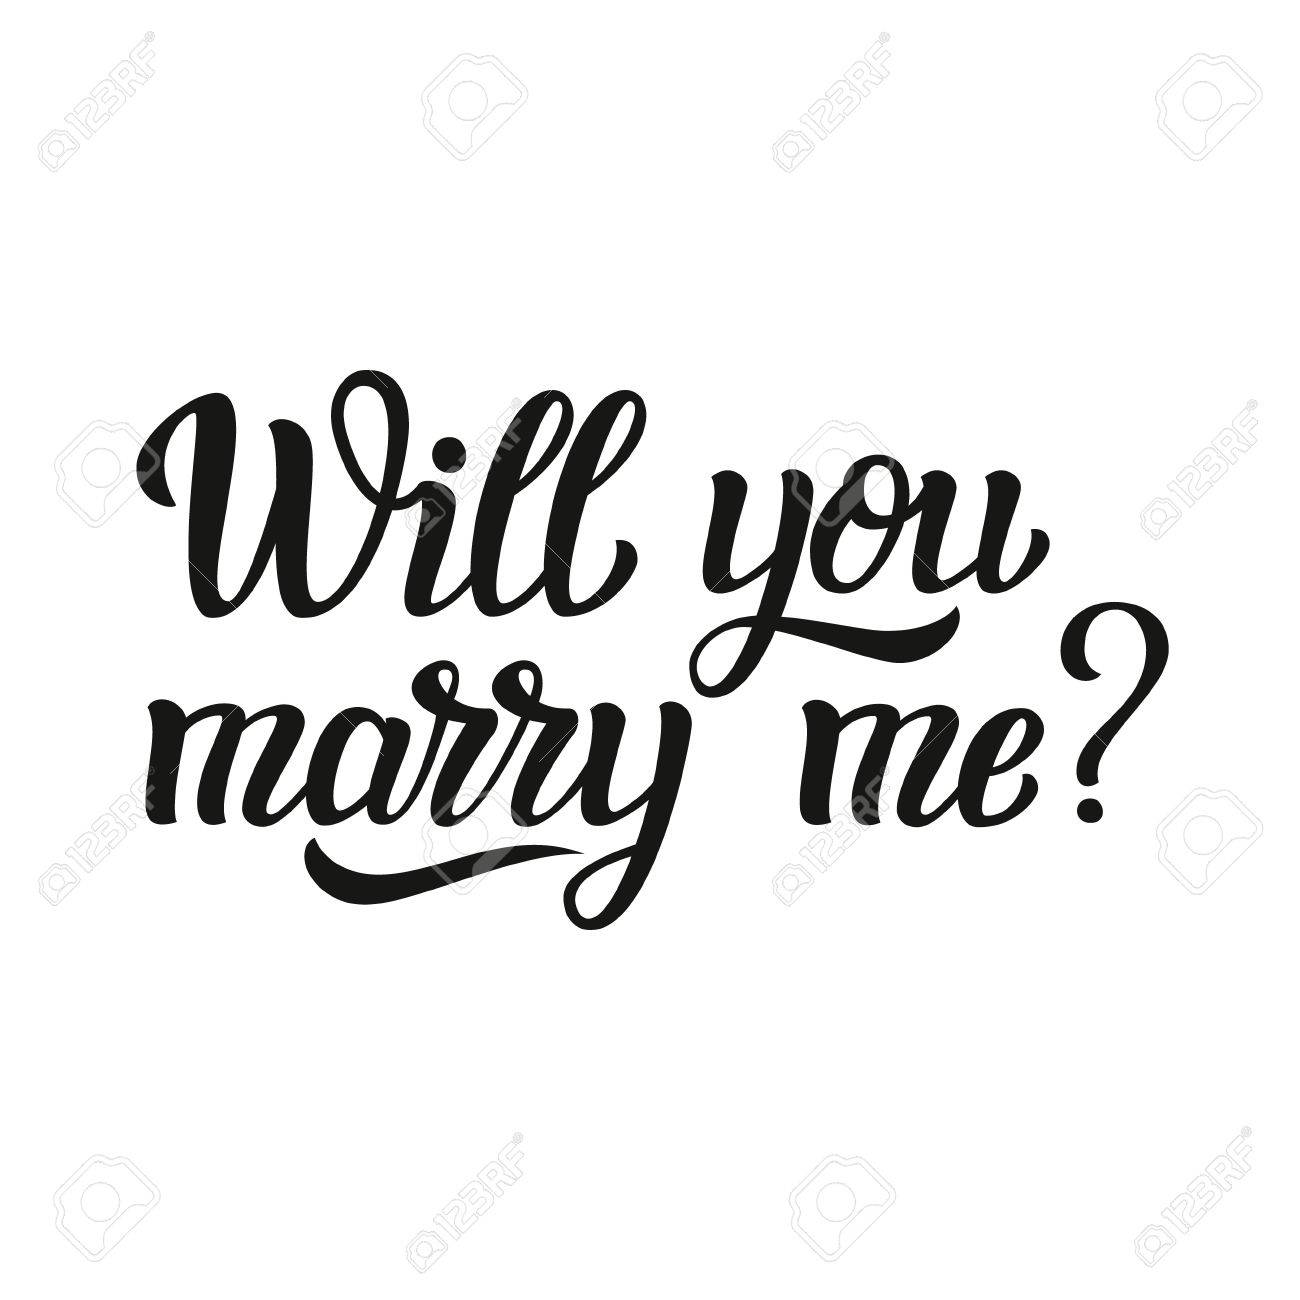 will you marry me hand lettering typography text for wedding decor family or